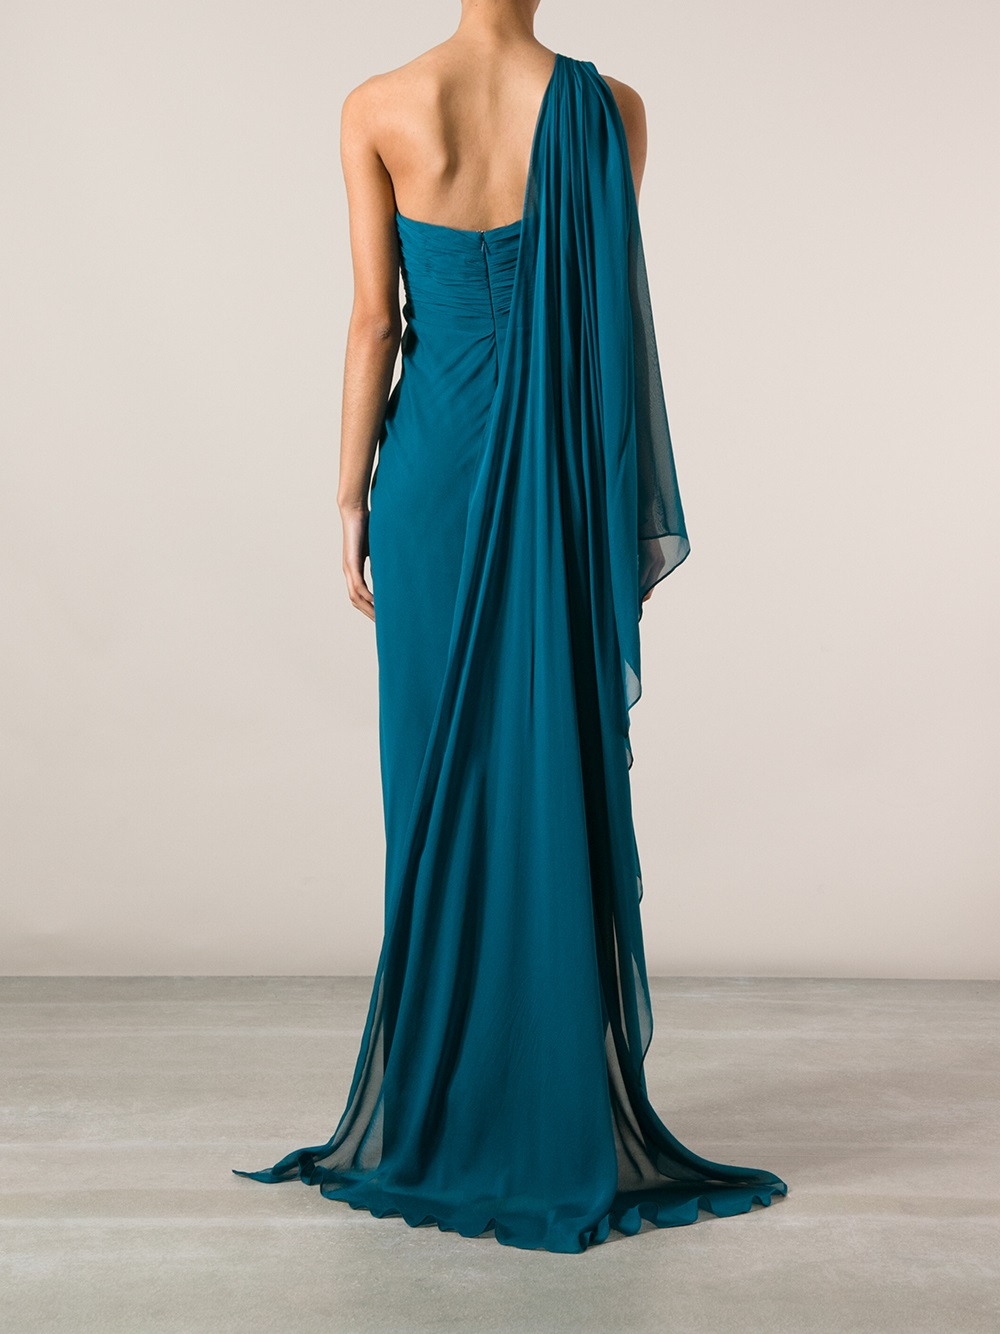 5e0c752e Marchesa notte Grecian Sleeveless Gown in Blue - Lyst